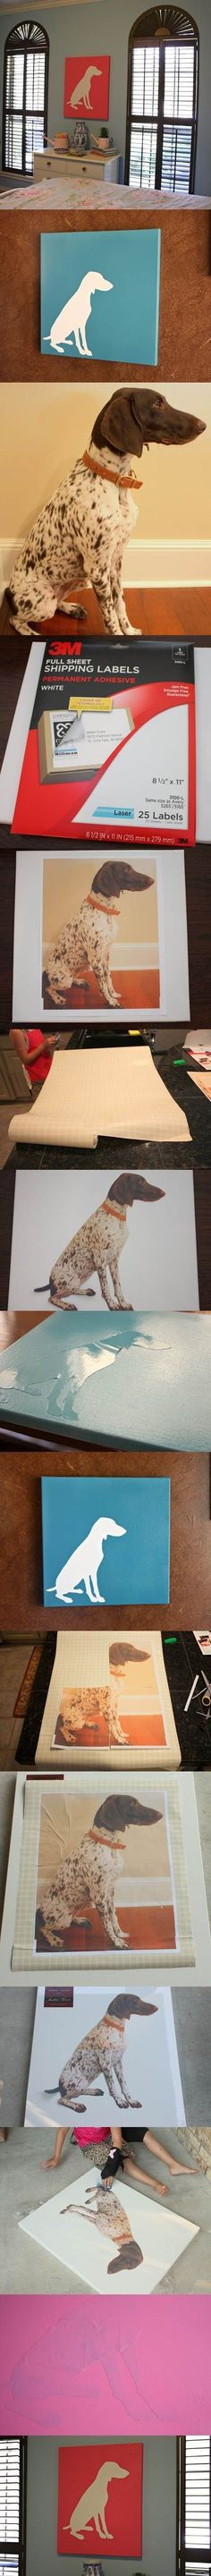 DIY Dog Silhouette Art 2 #dogdiy #dogsdiyclothes